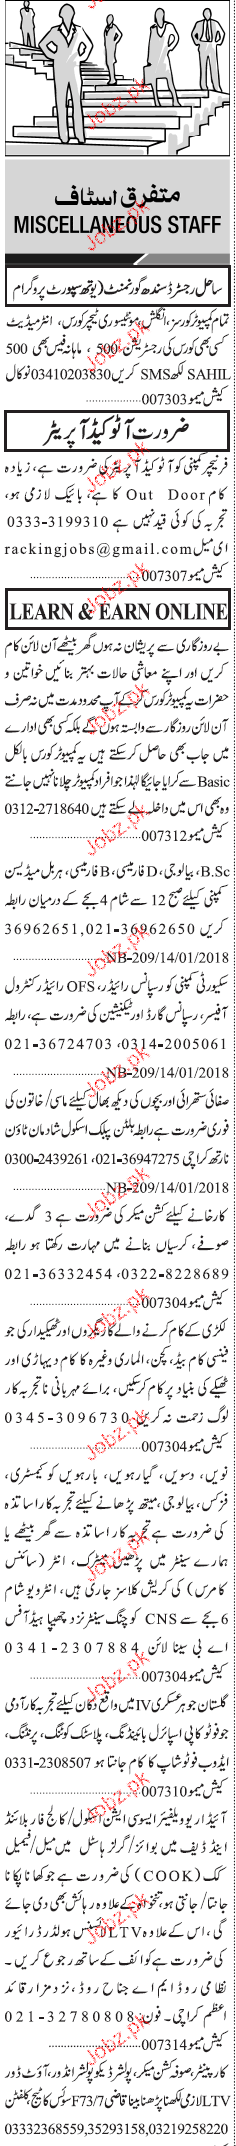 Auto Cad Operators, Data Entry Operators Job Opportunity